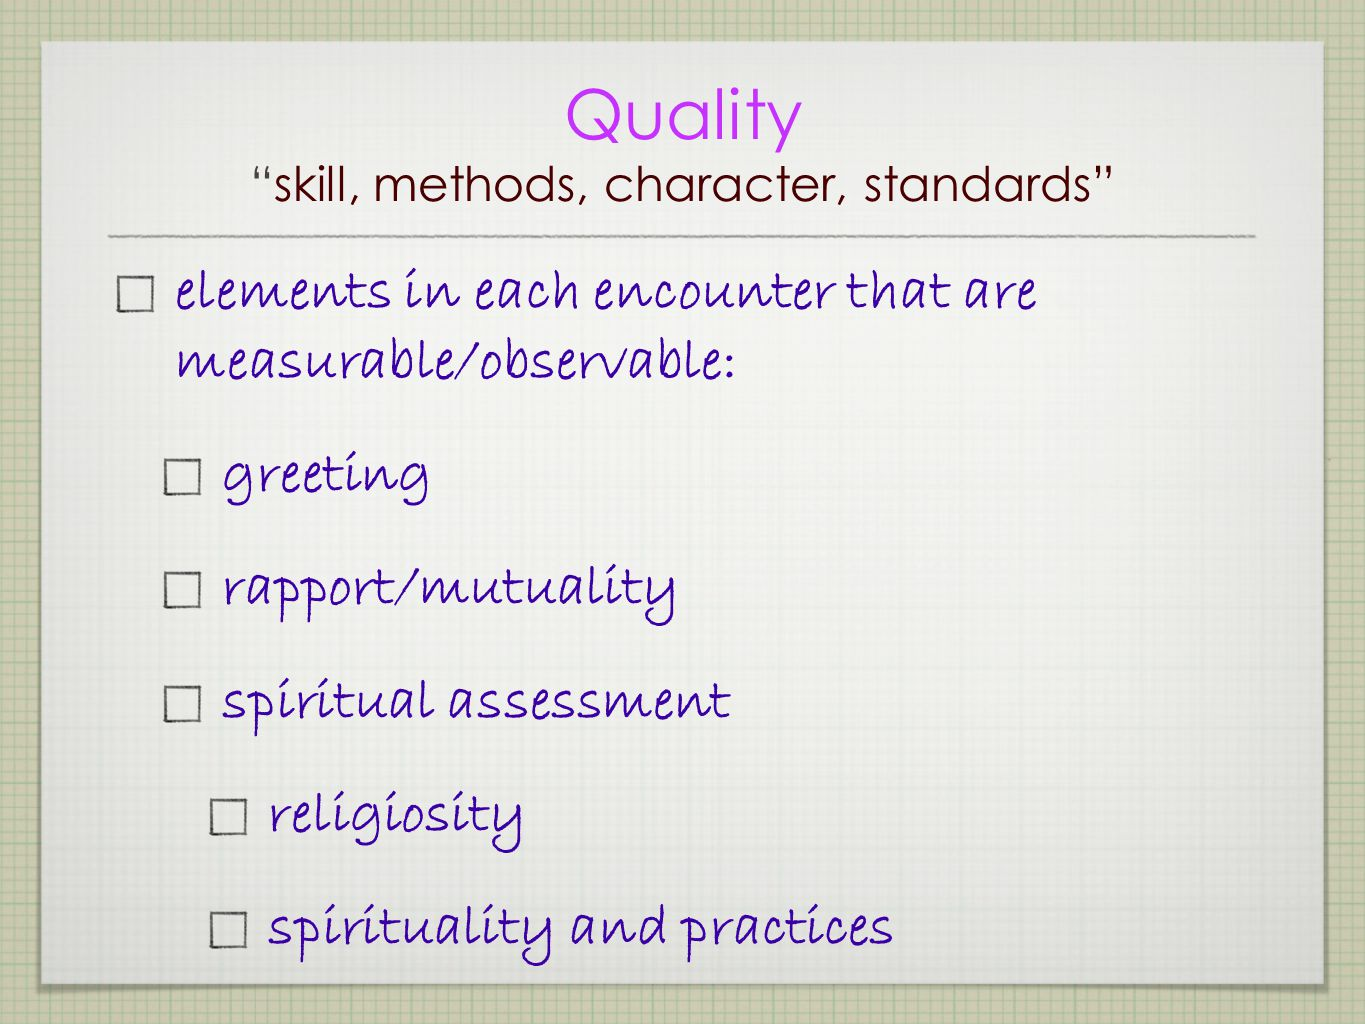 Quality skill, methods, character, standards